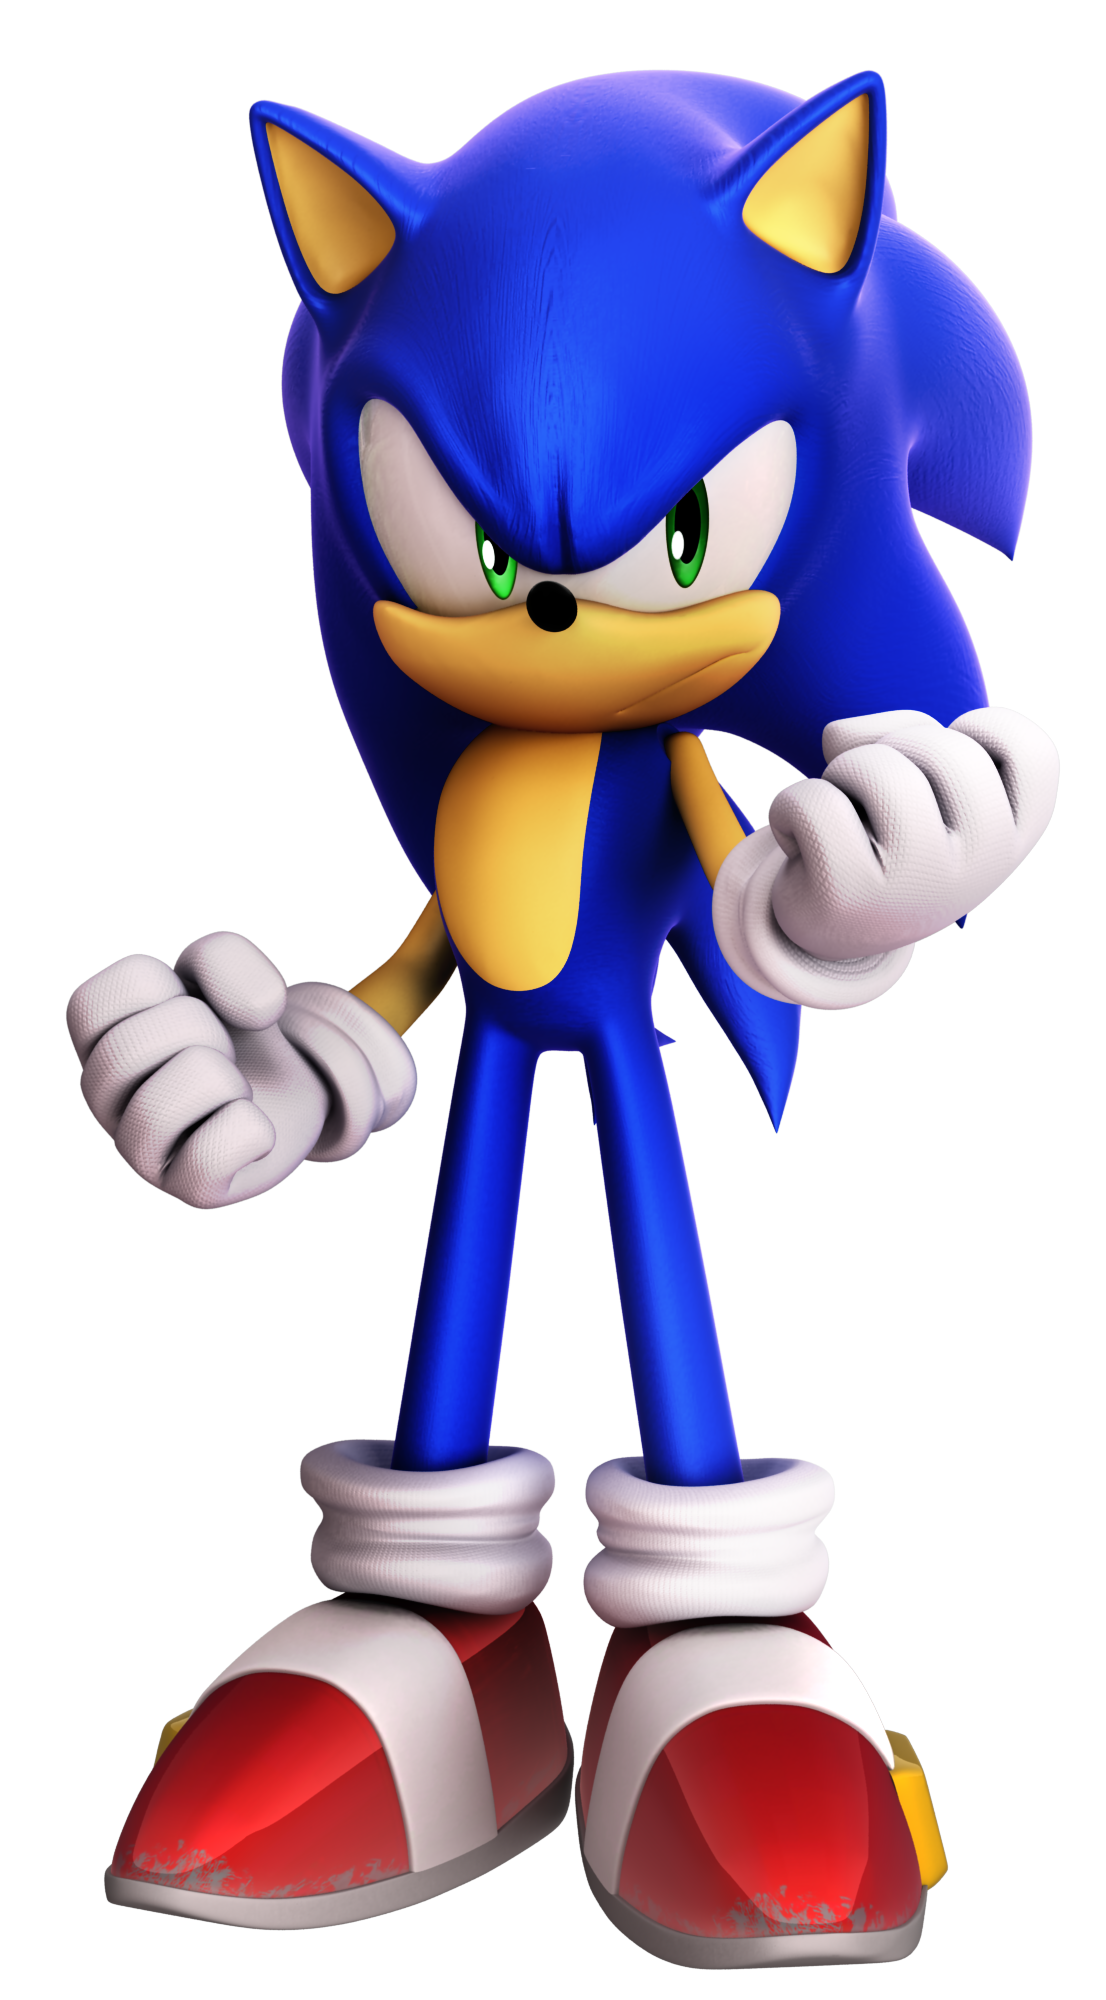 Sonic Ready To Take Back The World From Eggman S Empire In The Game Sonic Forces As He Teams Up With The Resistance Sonic Sonic The Hedgehog Sonic Heroes